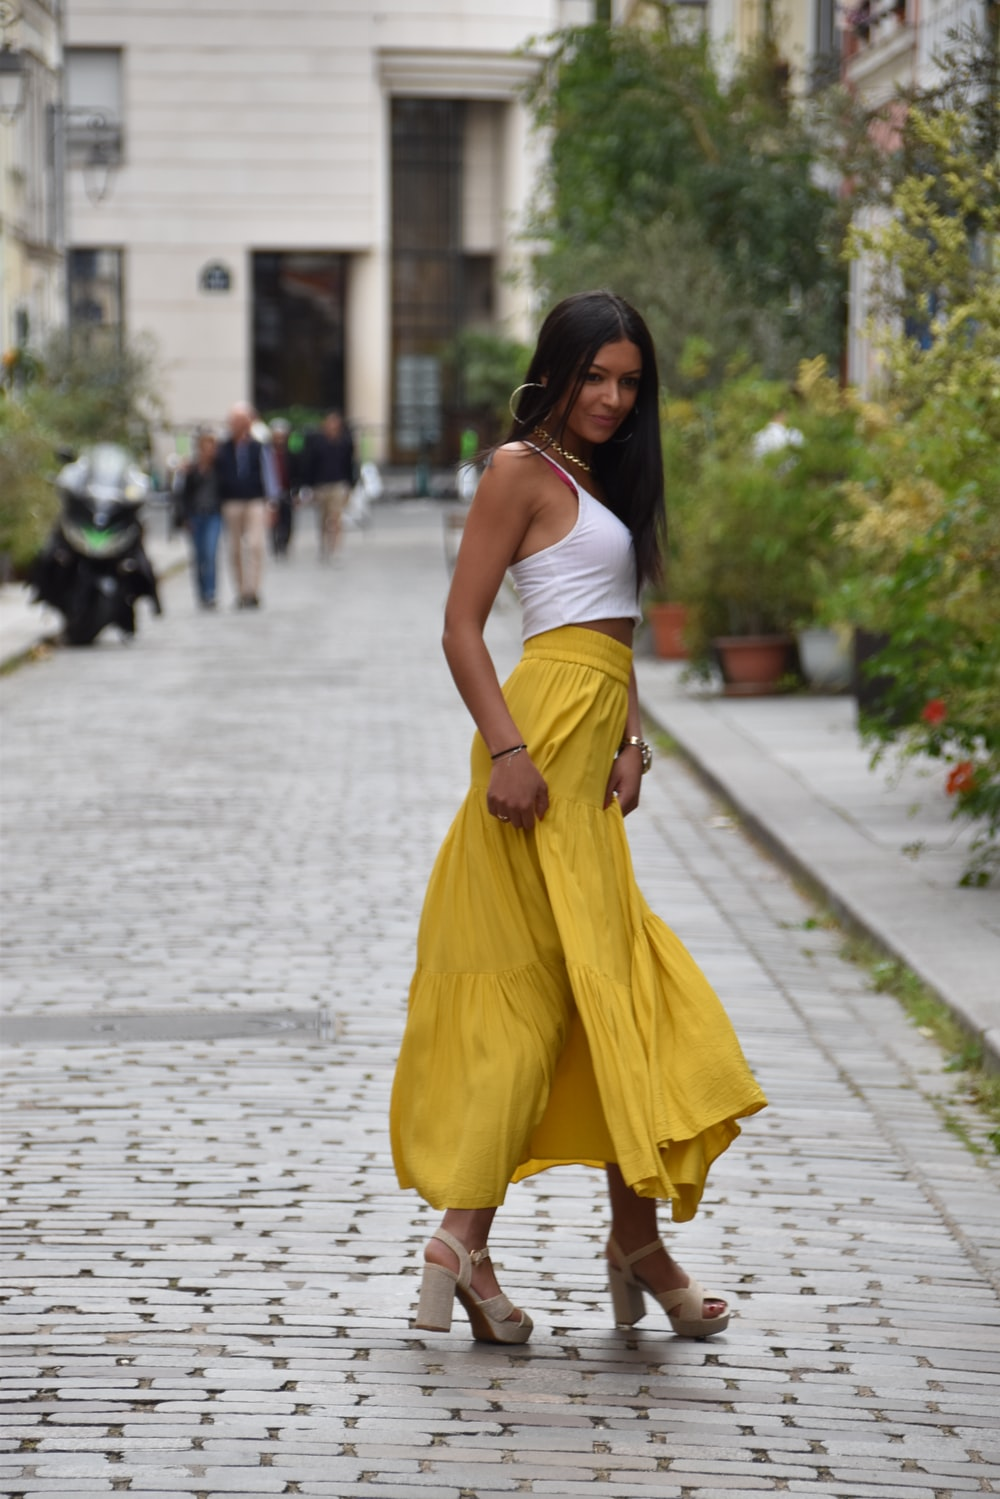 woman in white tank top and yellow skirt walking on street during daytime